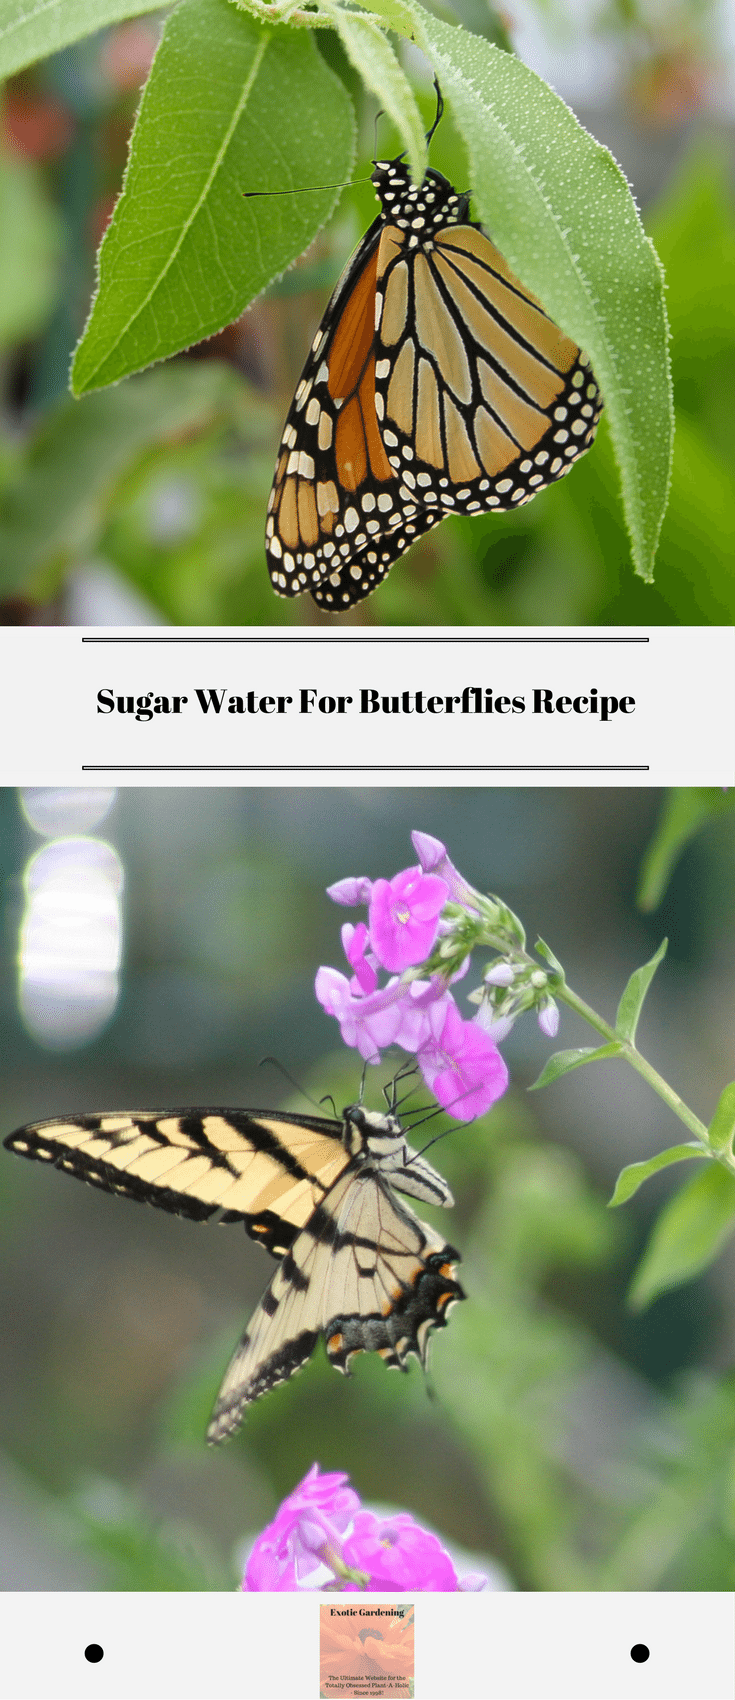 Sugar Water For Butterflies Recipe